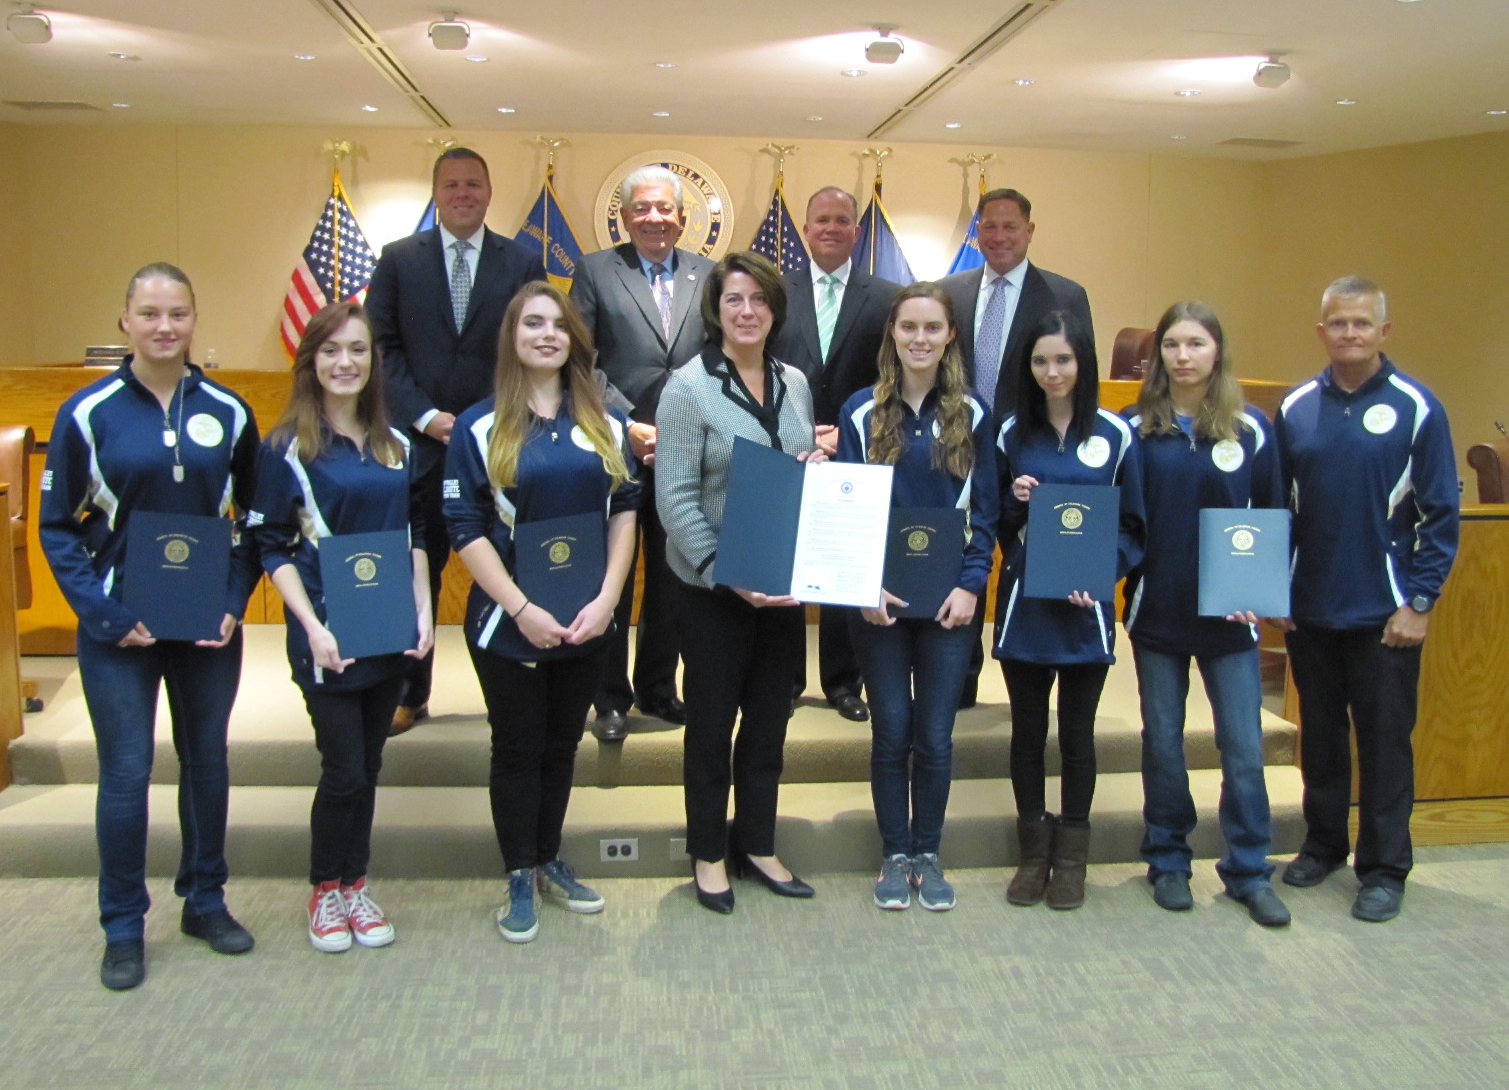 Sun Valley JROTC Girls' Fitness Team Wins National Title in San Diego